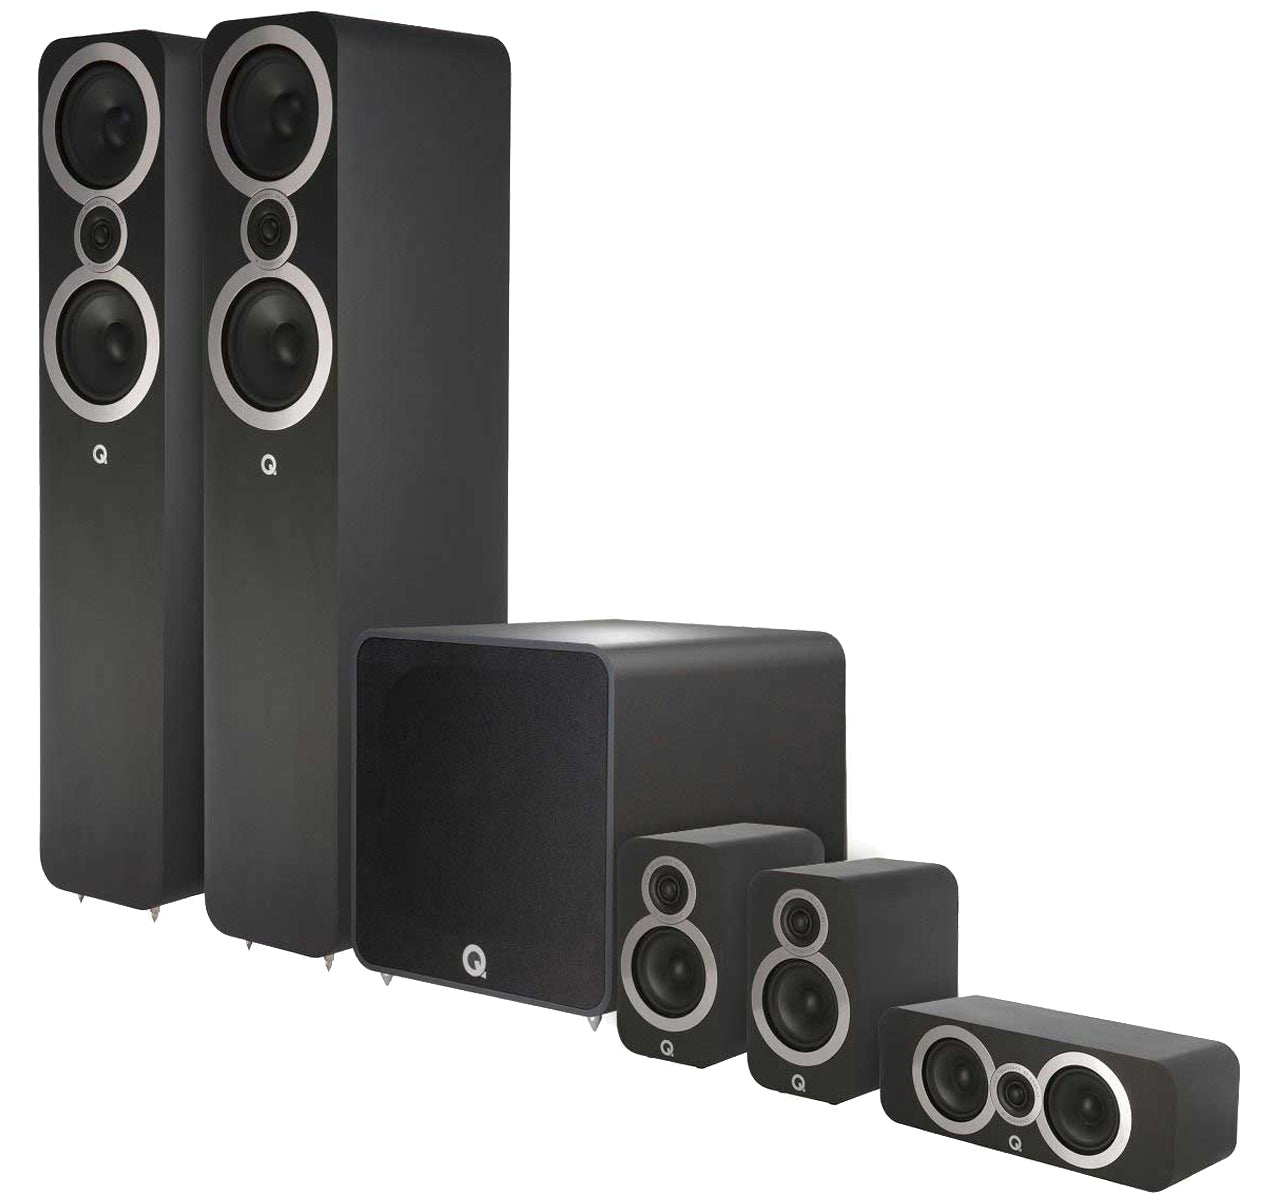 3050i 5.1 Plus Home Theater System